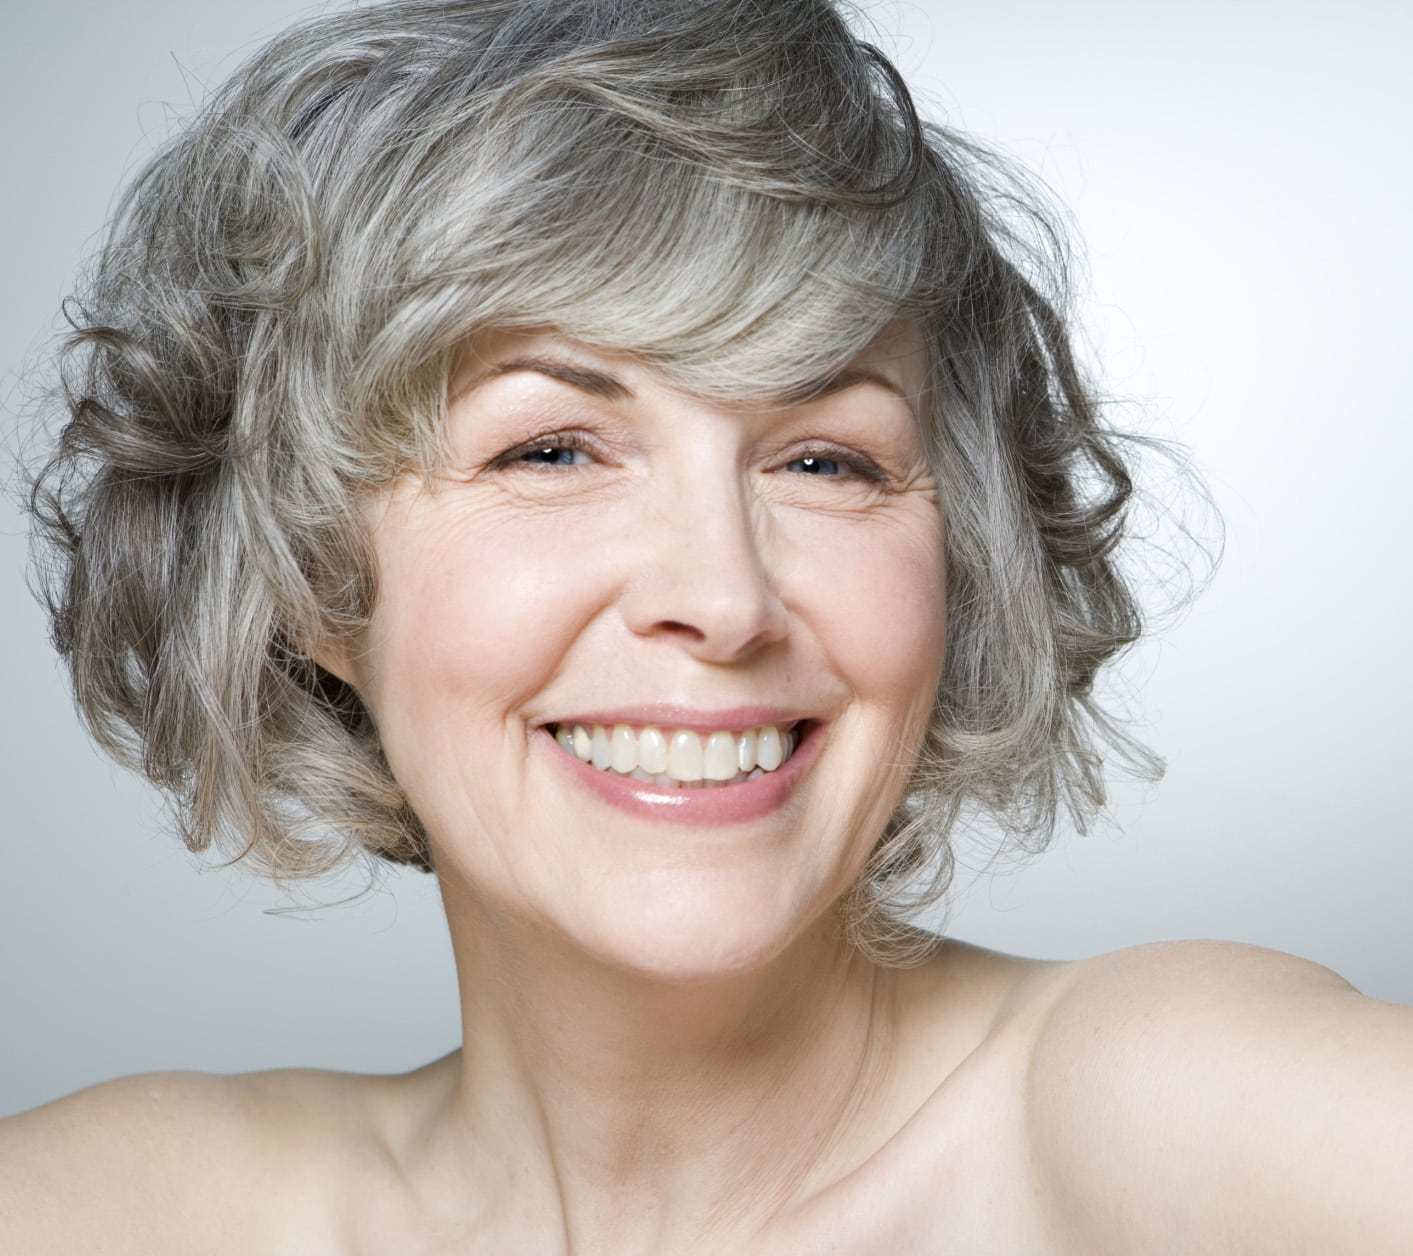 Coloring Gray Hair  Top Tips & Products